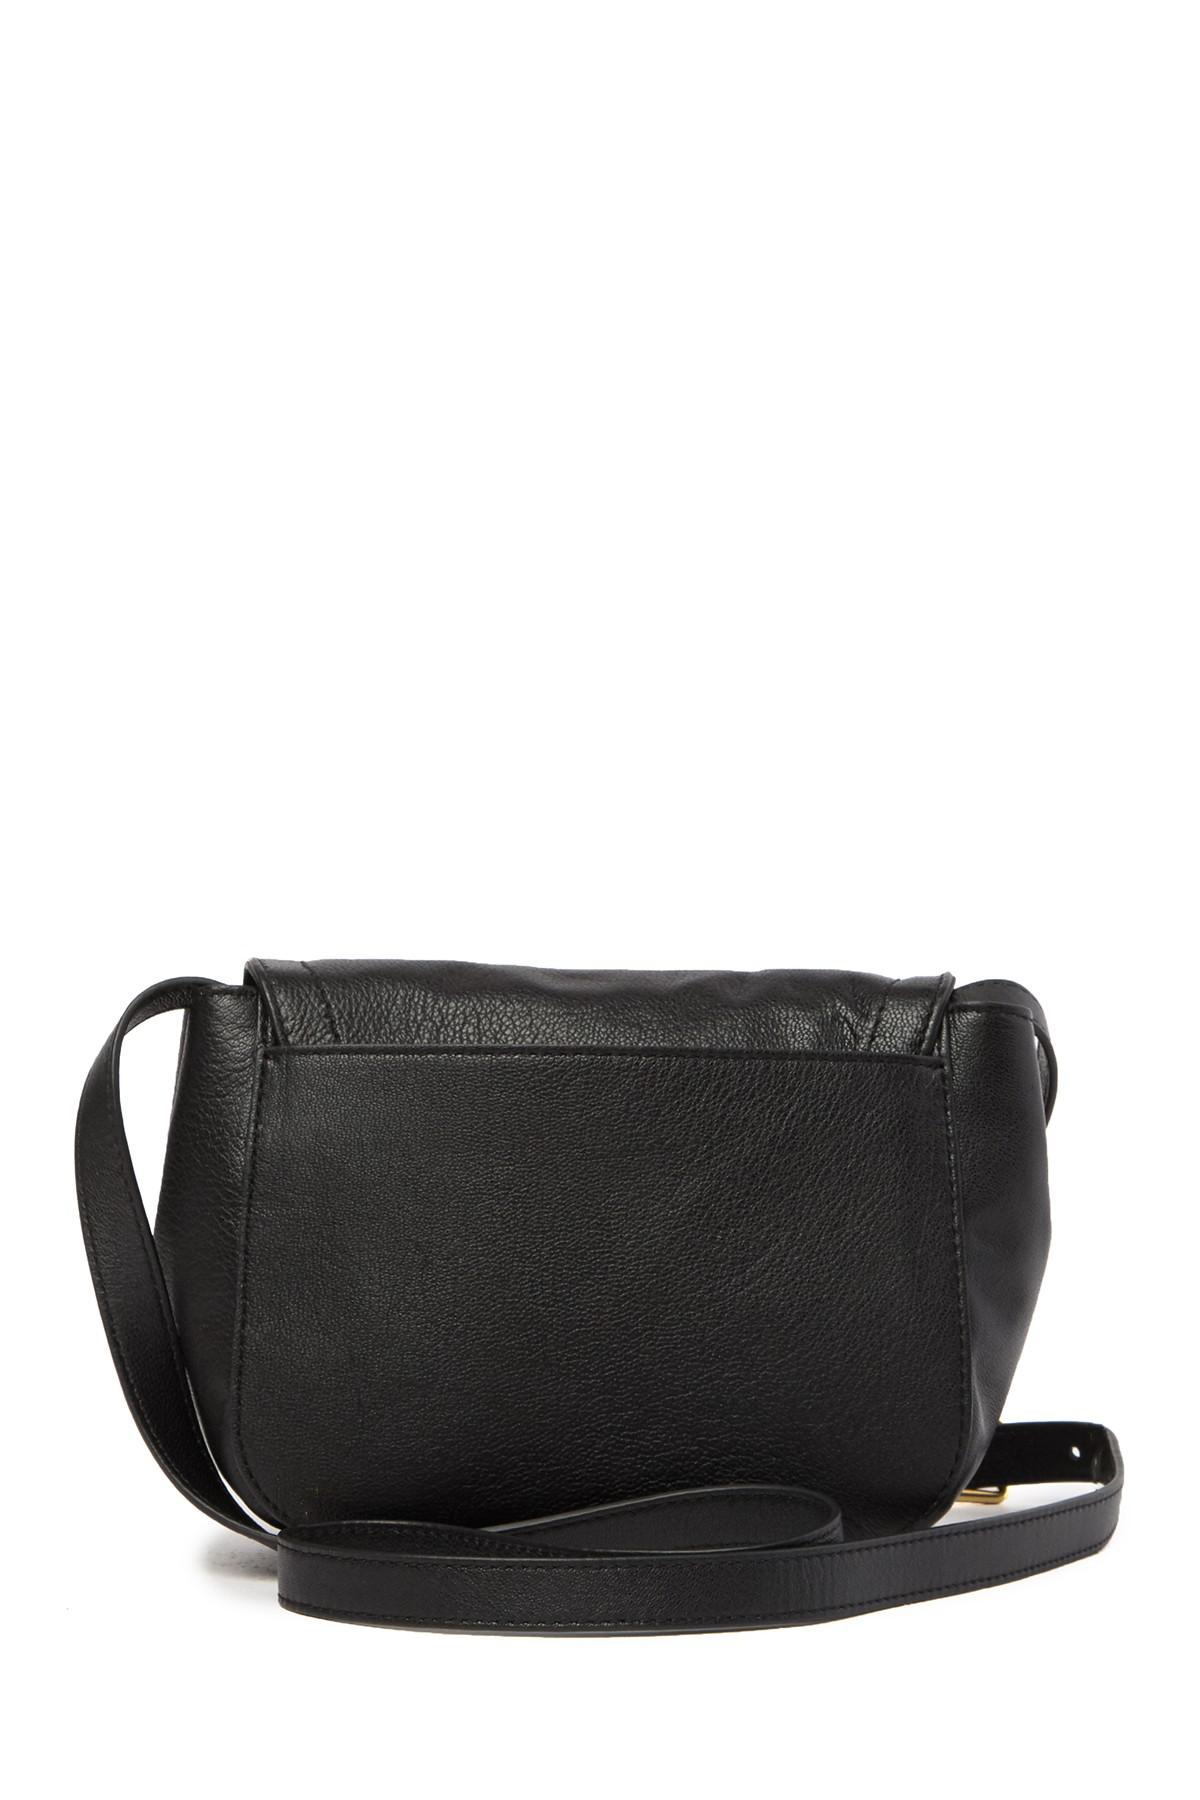 97cf35a9ca3 Cole Haan Hinge Lock Leather Crossbody Bag in Black - Lyst